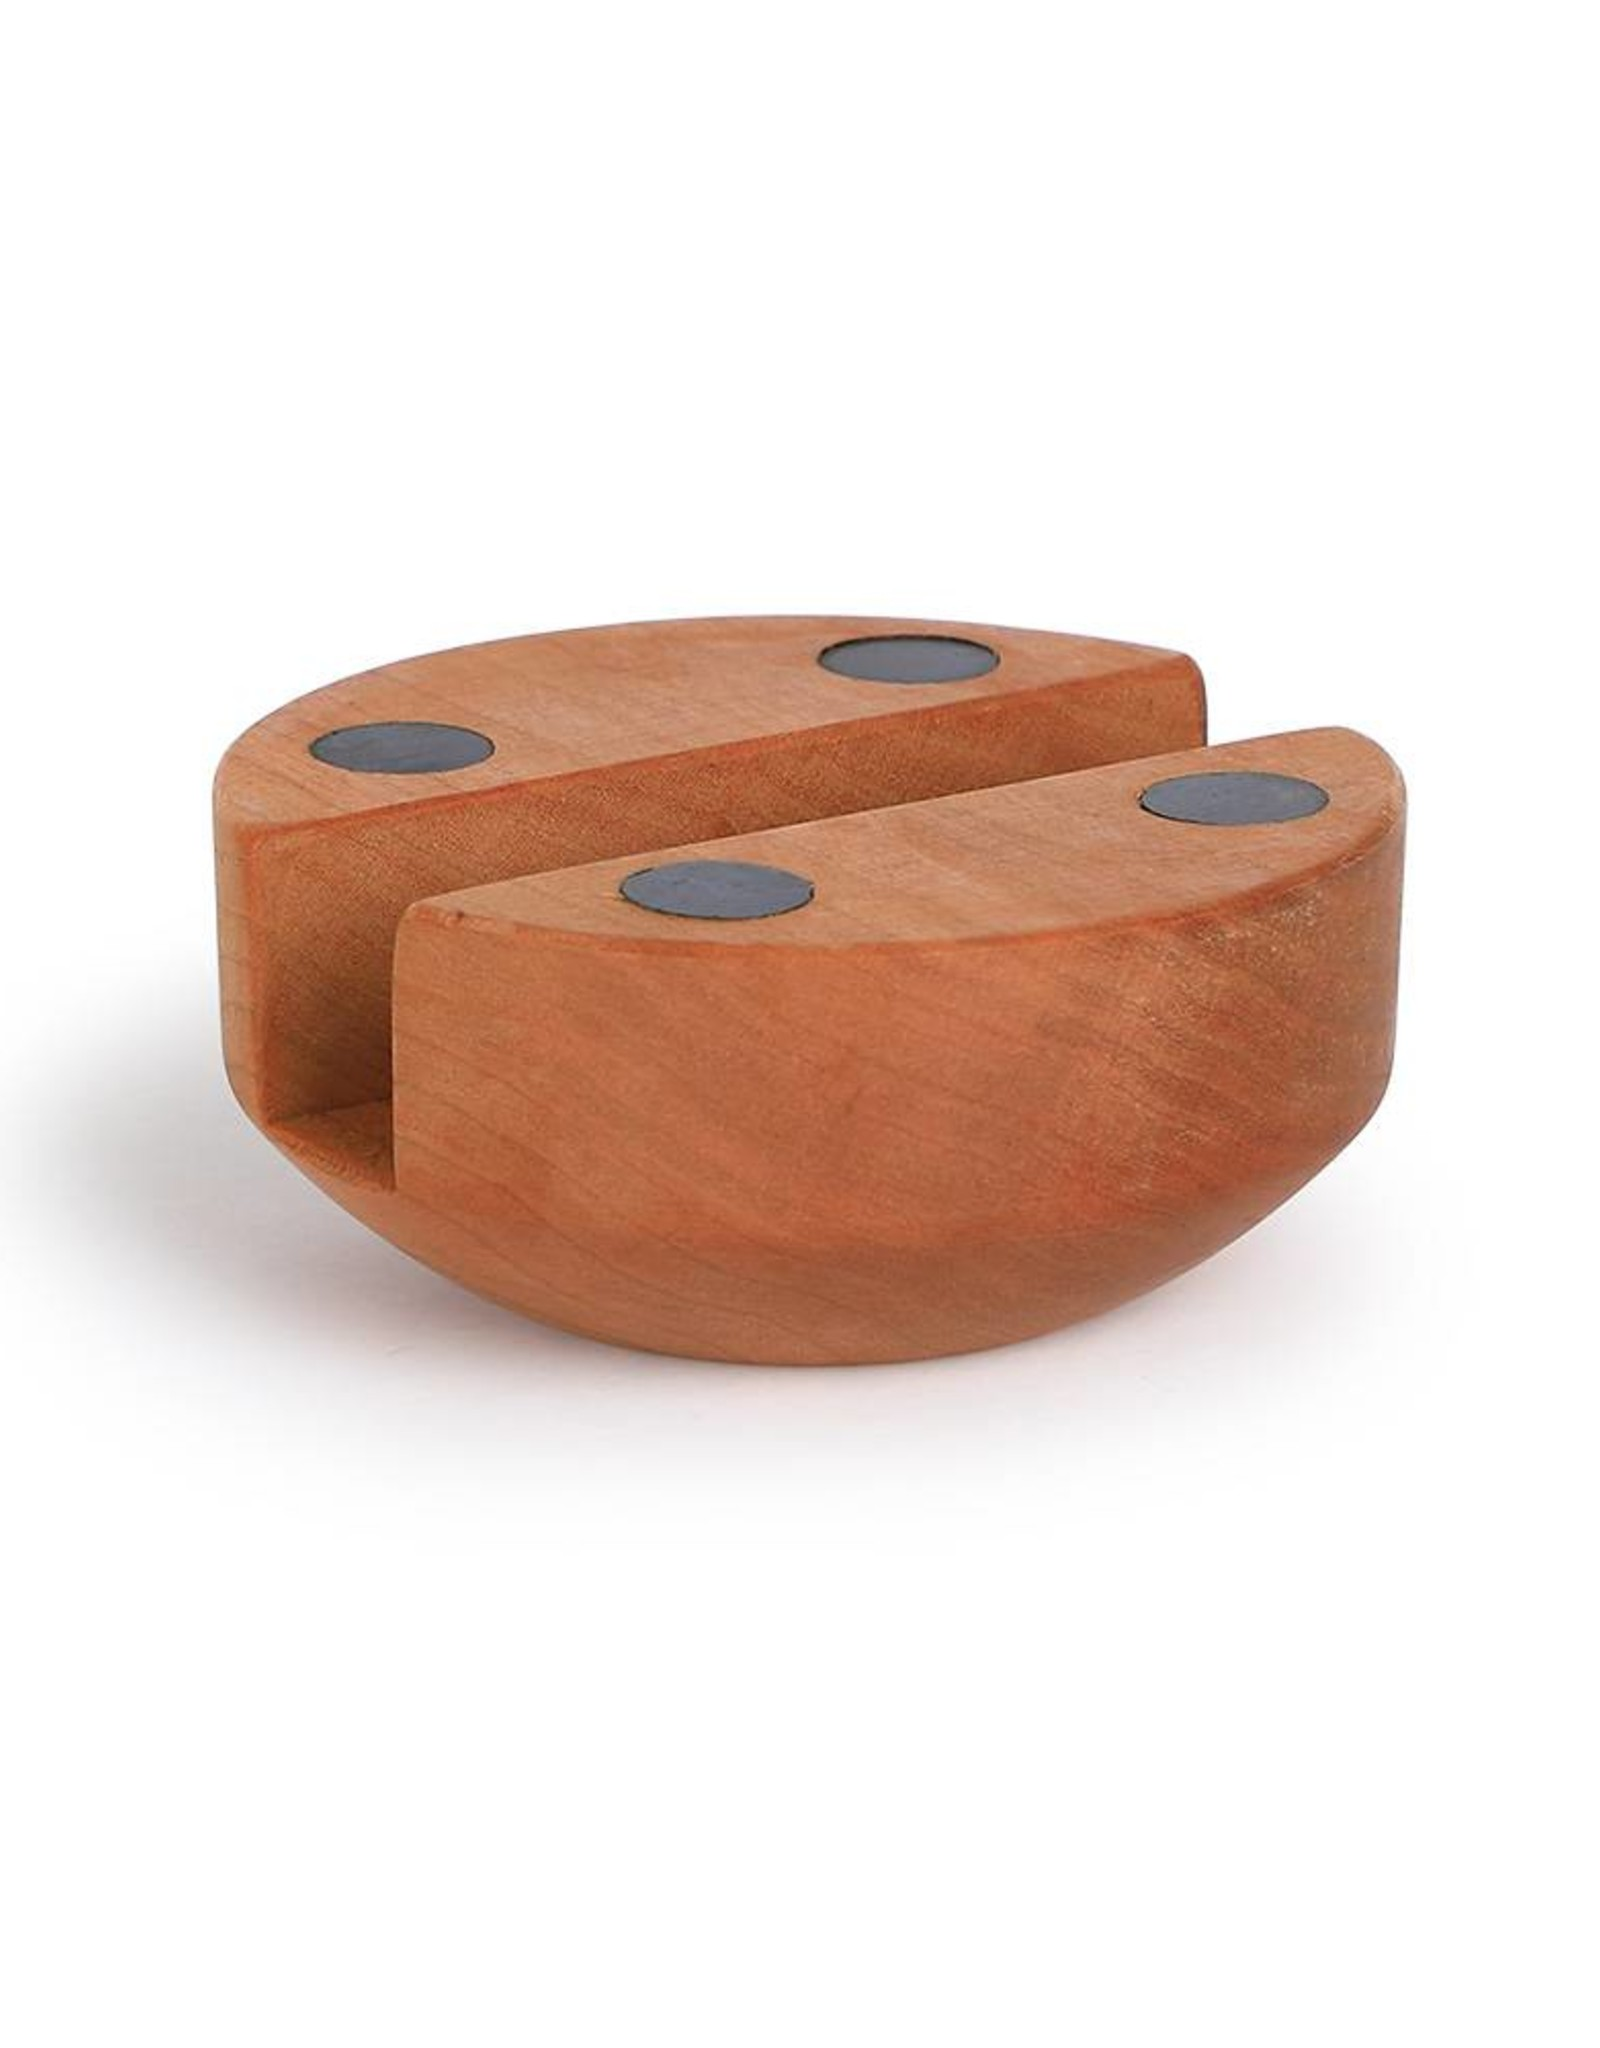 Vew-Do Vew-Do Replacement Wobble Rock